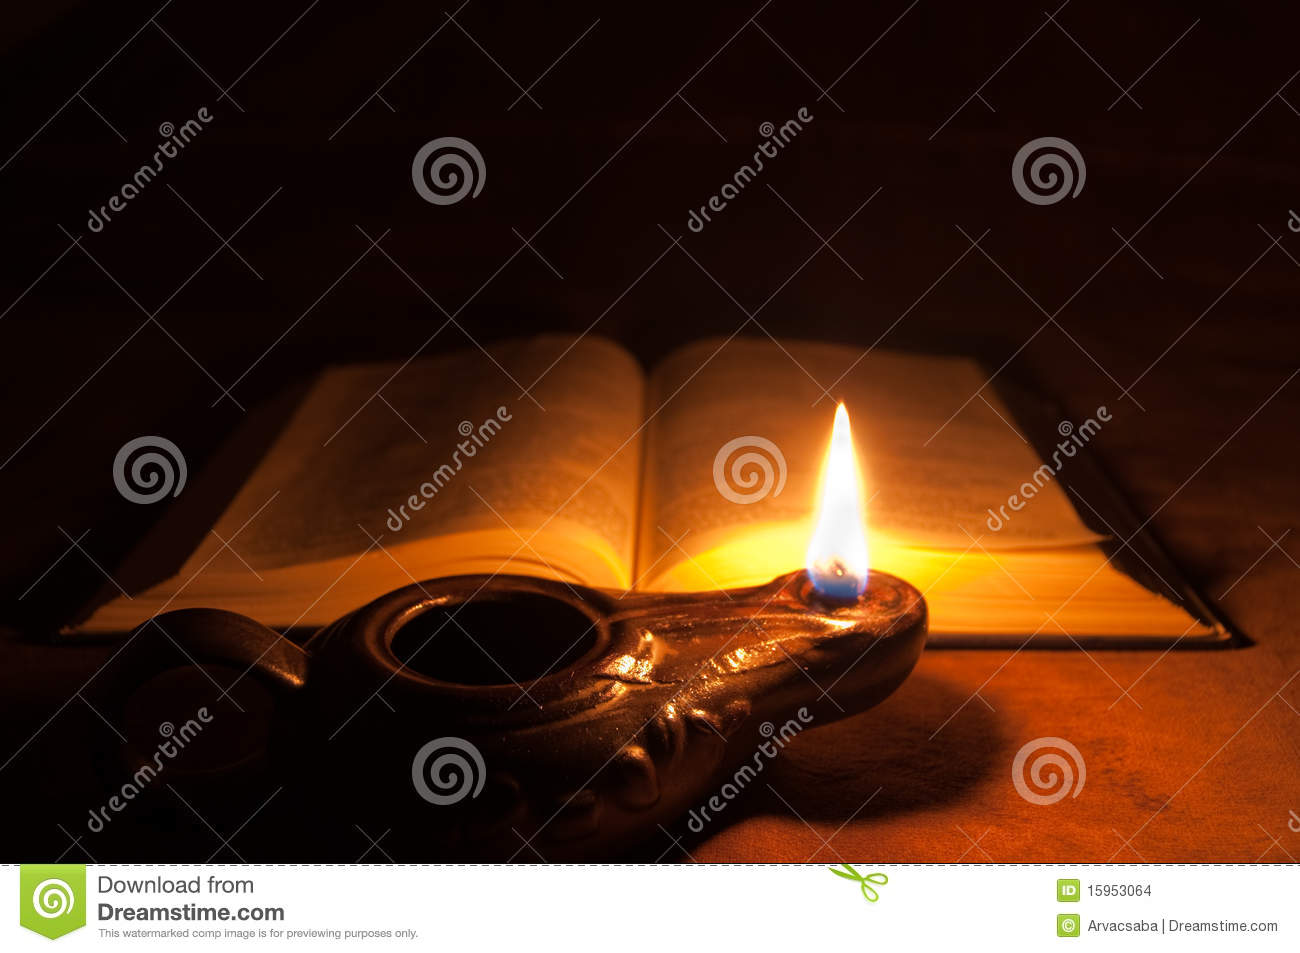 lamp and bible - photo #6